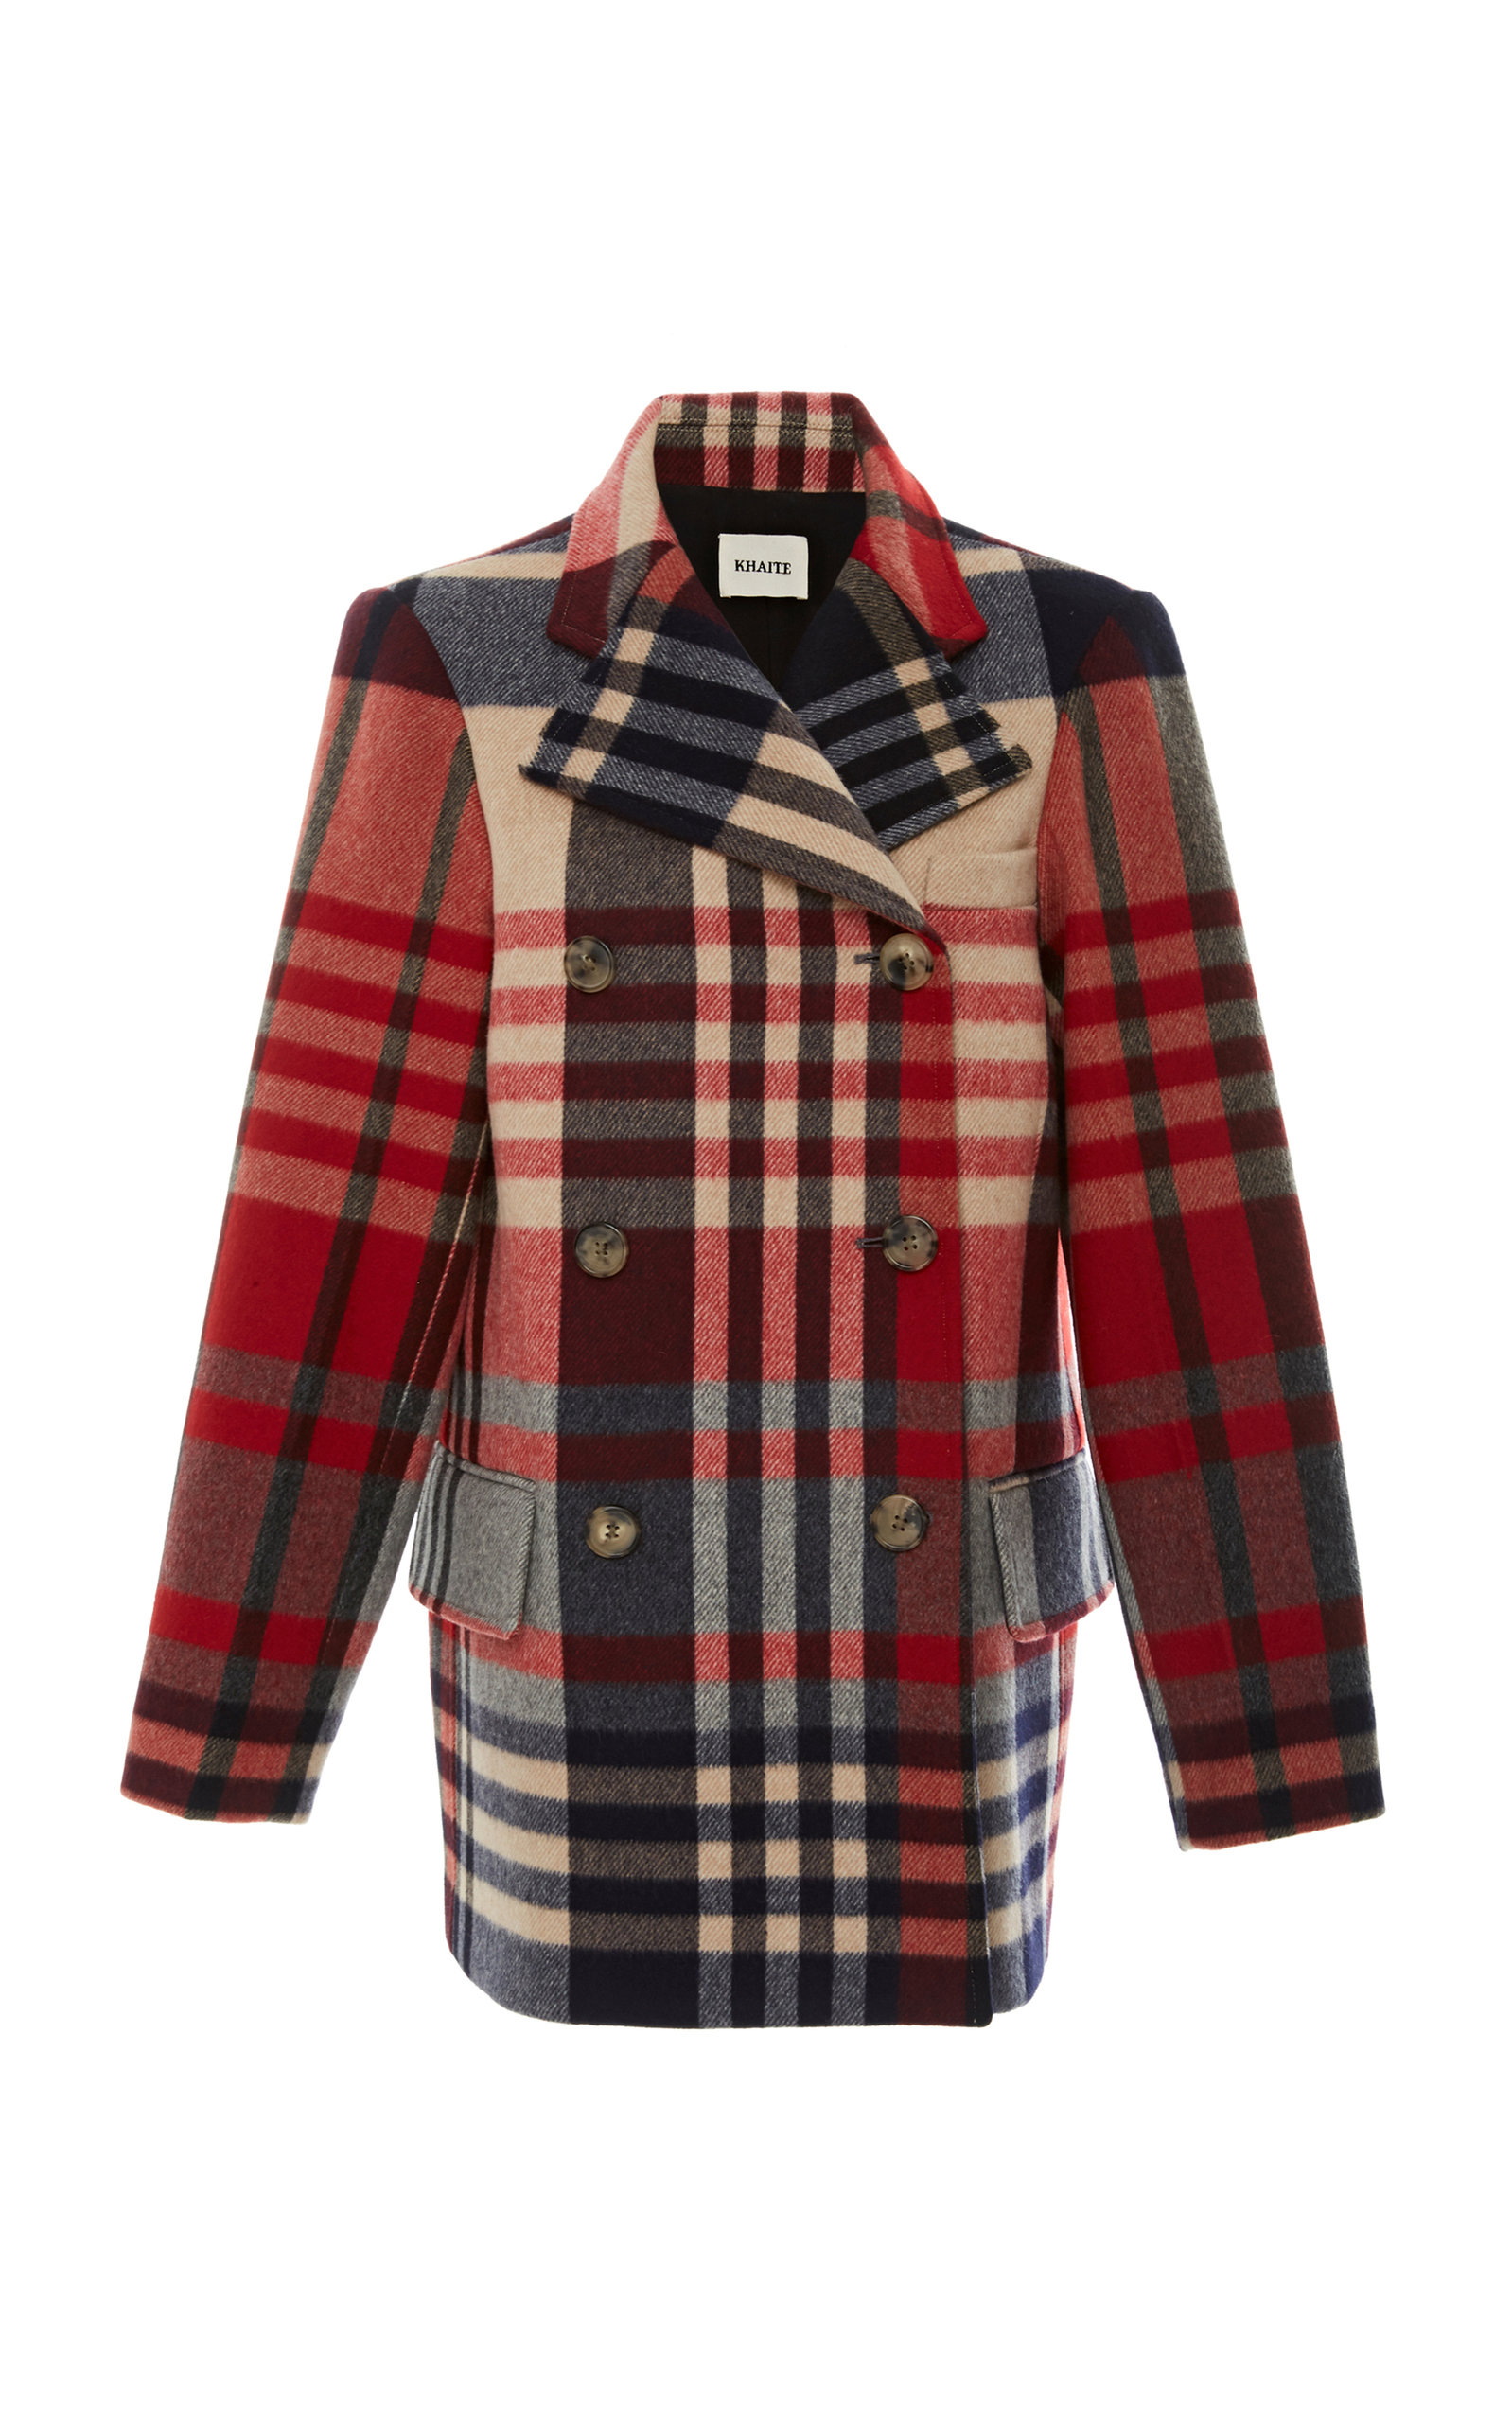 Clara Double-Breasted Checked Wool And Cashmere-Blend Coat, Plaid